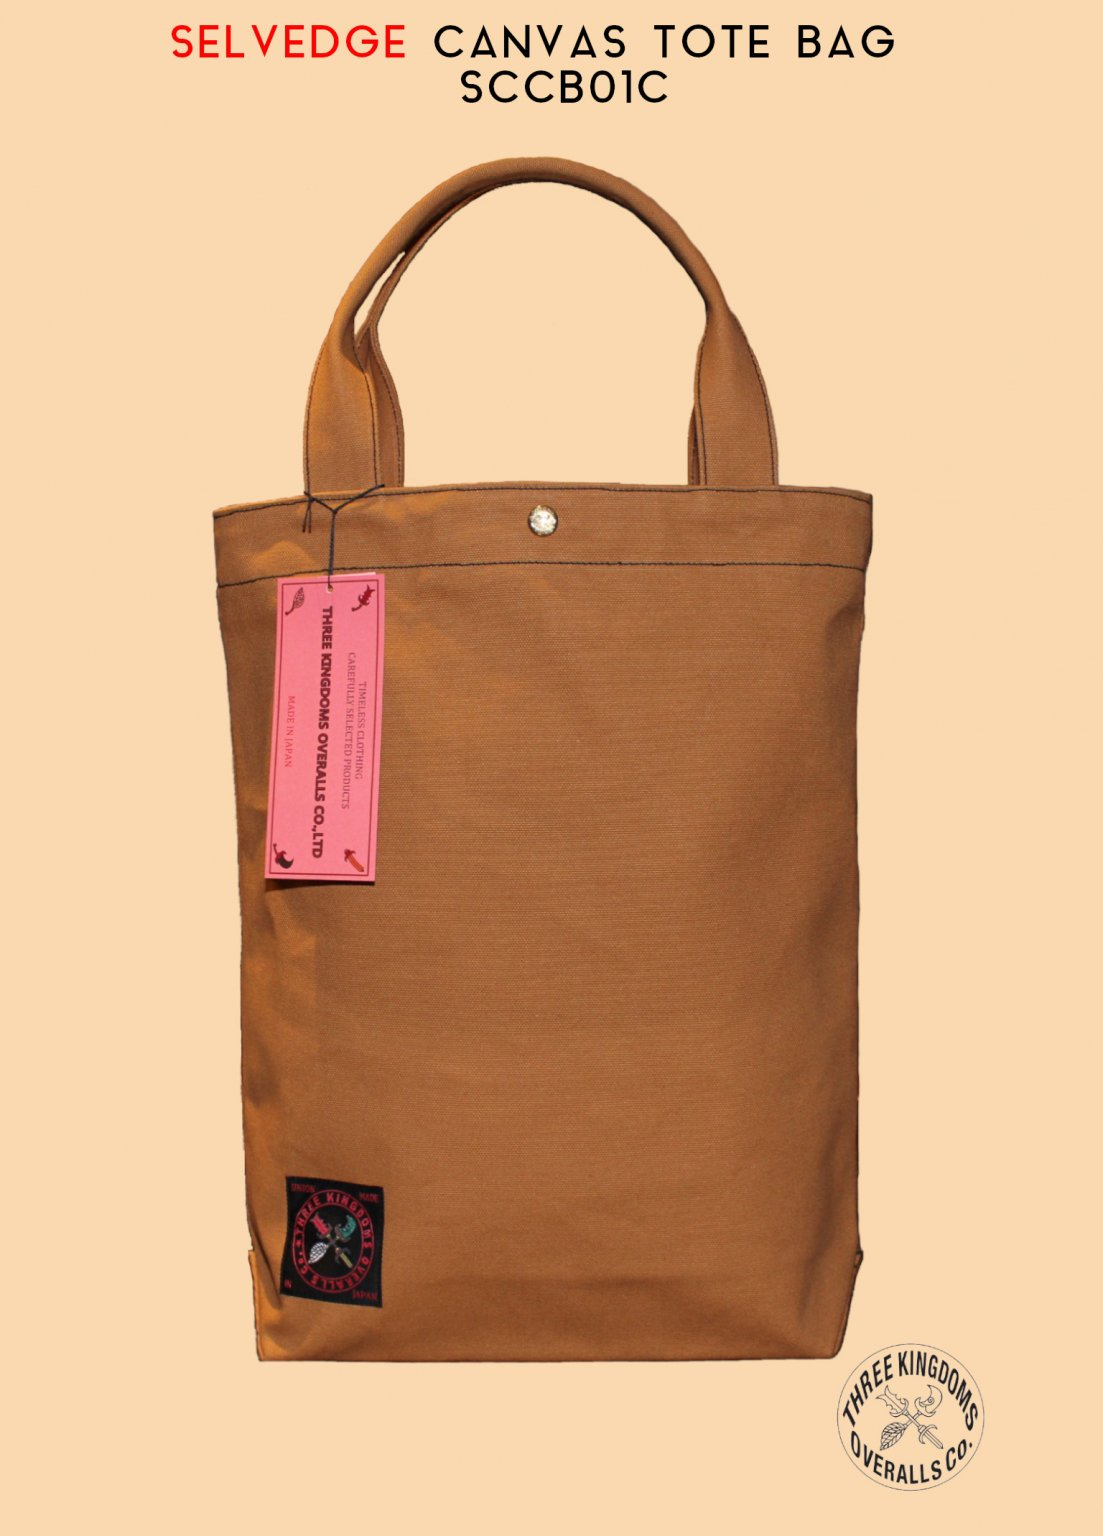 SCCB01C SELVEDGE COTTON CANVAS TOTE BAG<img class='new_mark_img2' src='https://img.shop-pro.jp/img/new/icons14.gif' style='border:none;display:inline;margin:0px;padding:0px;width:auto;' />